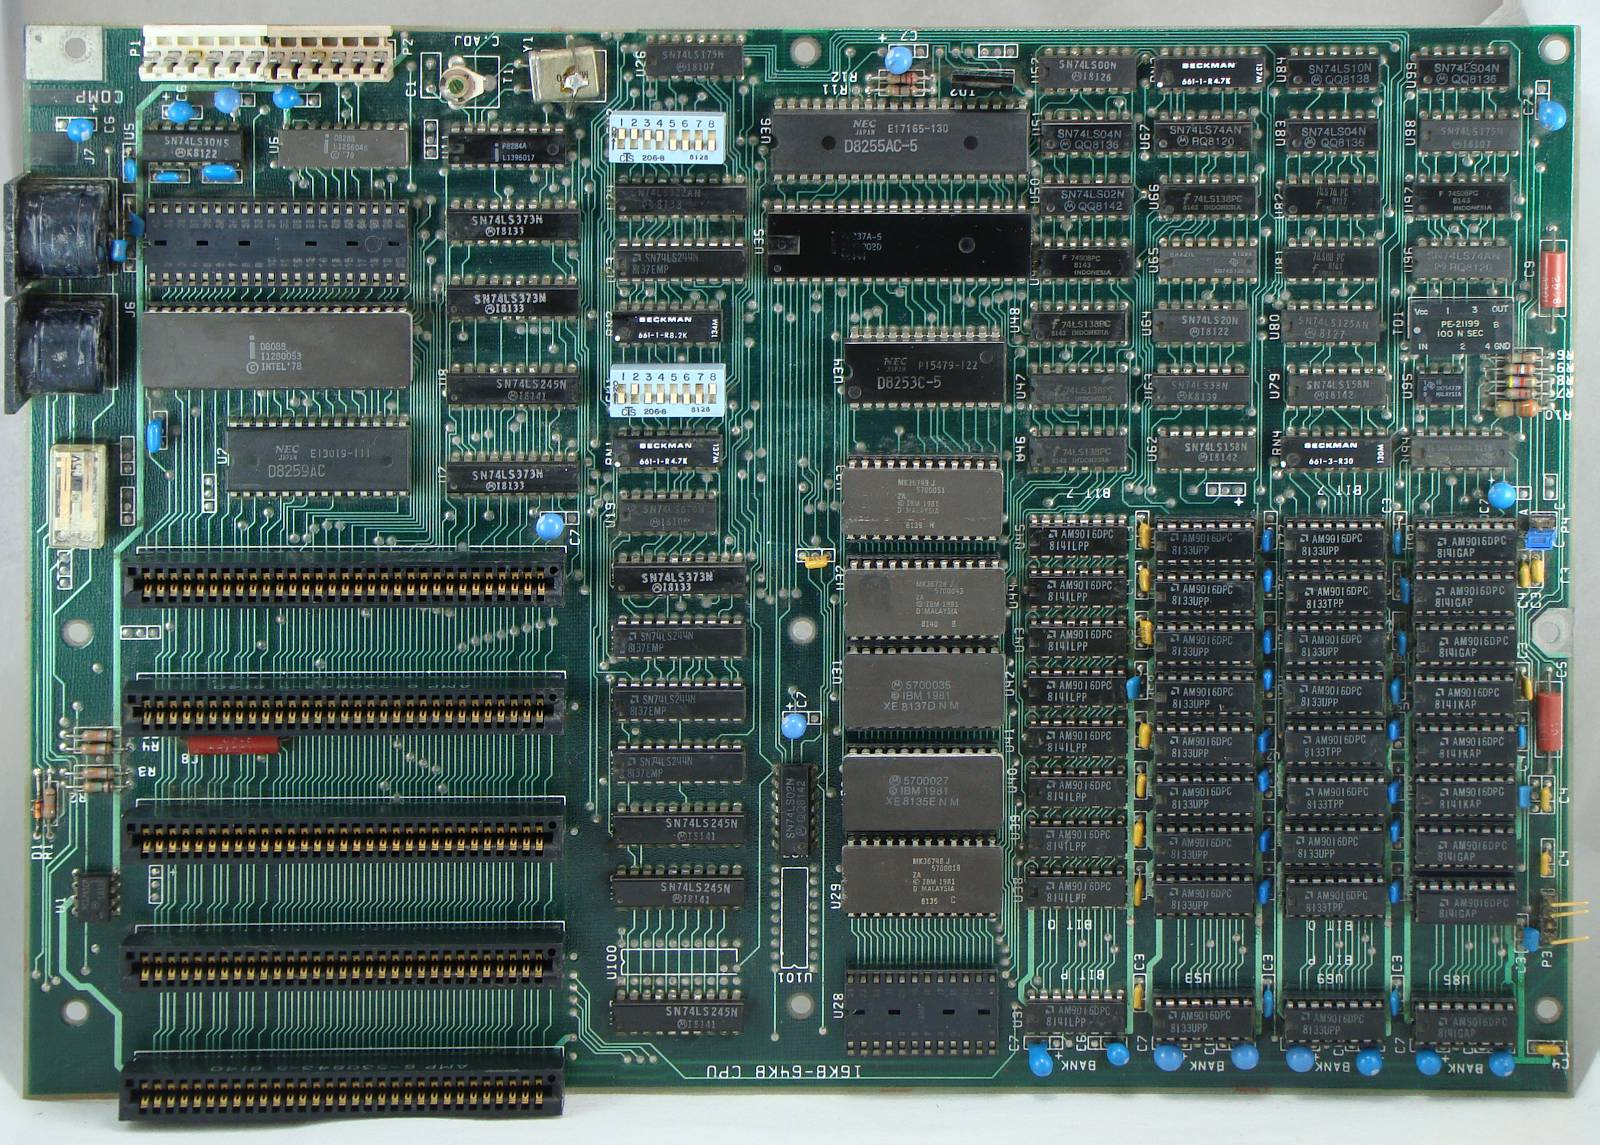 [The motherboard is the main circuit board of a personal computer—one of the key developments of the third industrial revolution]